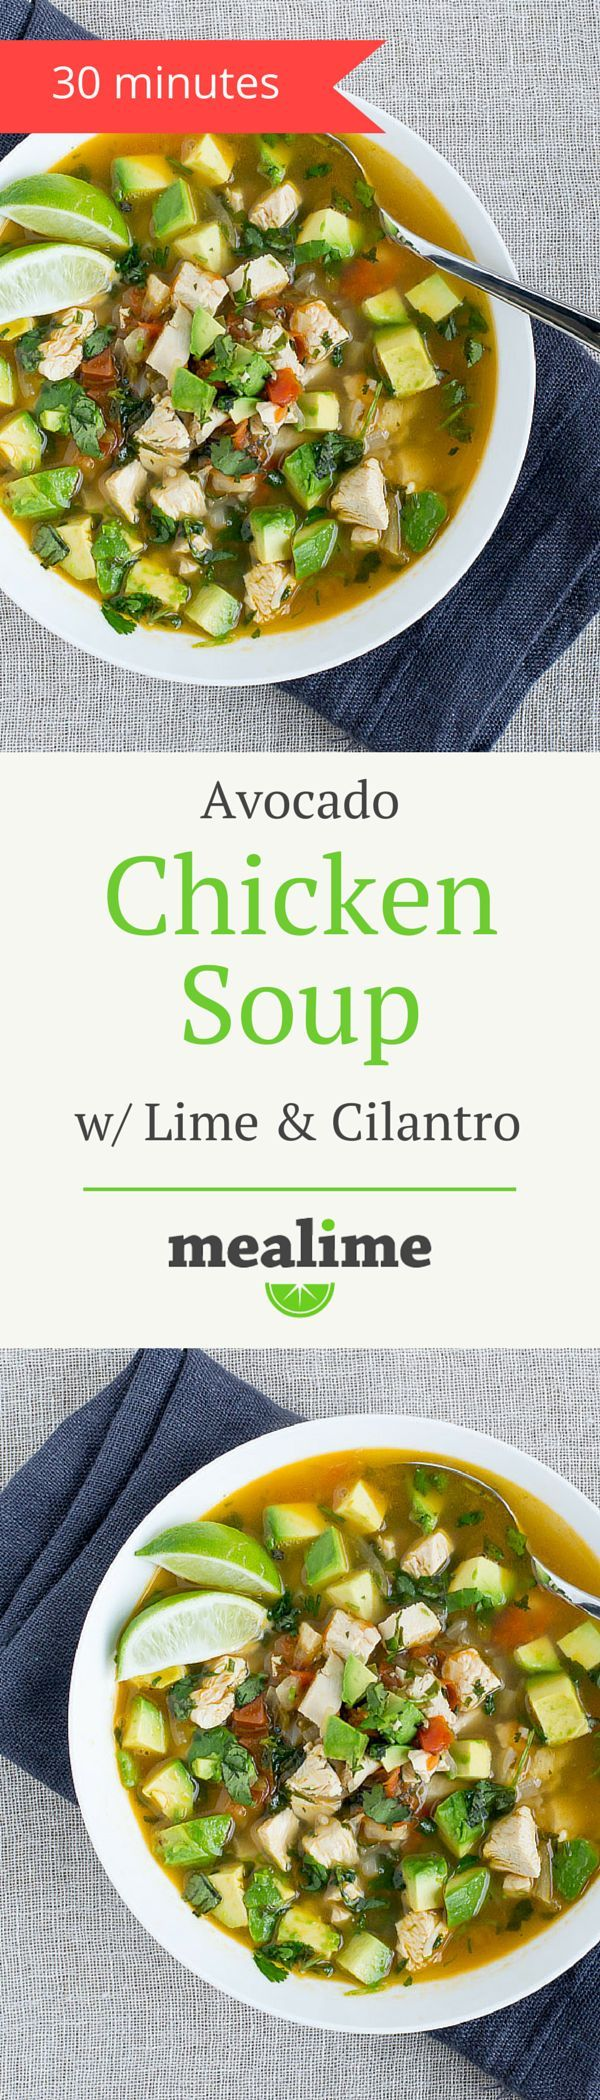 Chicken Avocado Soup with Lime & Cilantro via @mealime - a quick and healthy recipe for one or two. Flexitarian, keto, low carb, paleo/primal, dairy free, fish free, gluten free, peanut free, shellfish free, and tree nut free. #mealplanning